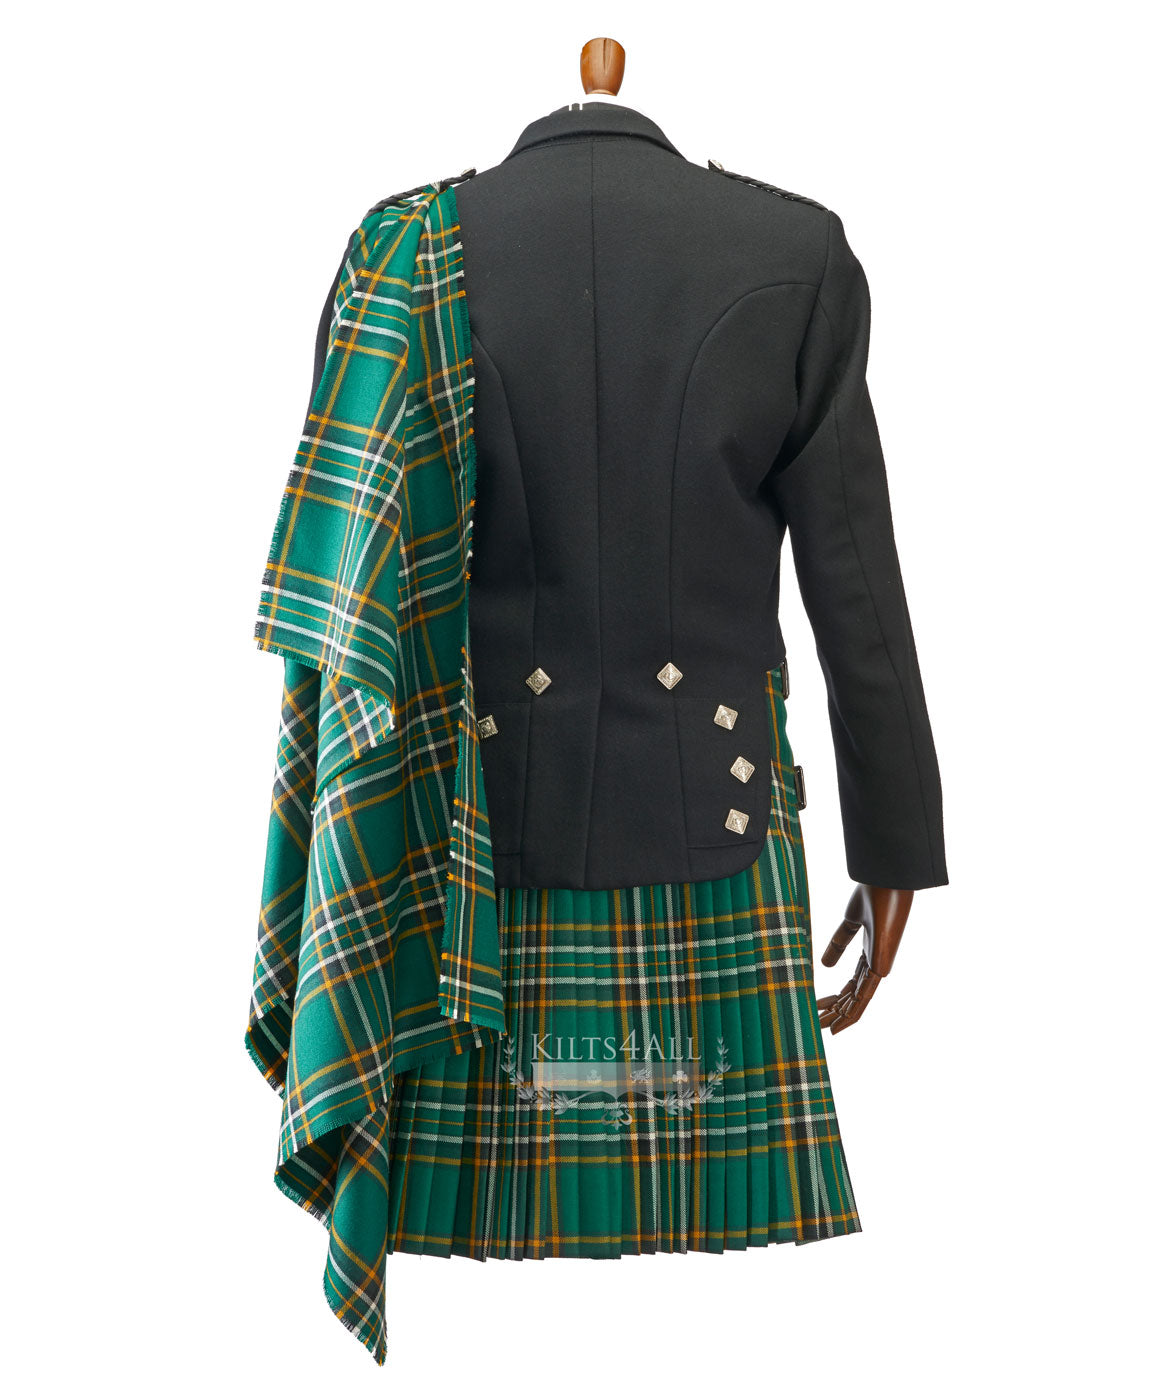 Mens Irish Tartan Kilt Outfit to Hire - Lightweight Navy Tweed Argyll Jacket & Waistcoat